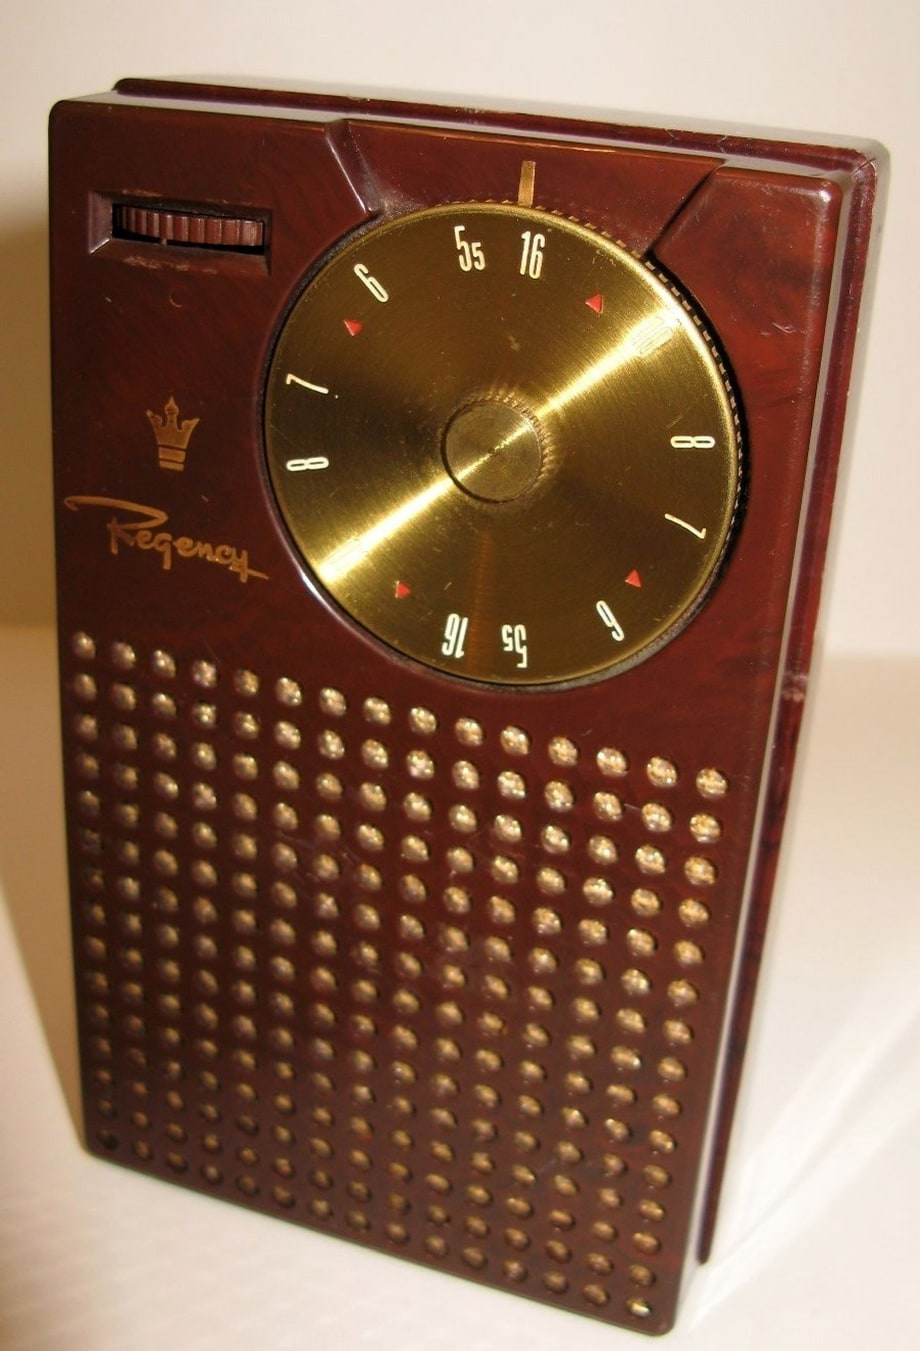 Regency Tr 1 Transistor Radio 1954 24 Inventions That